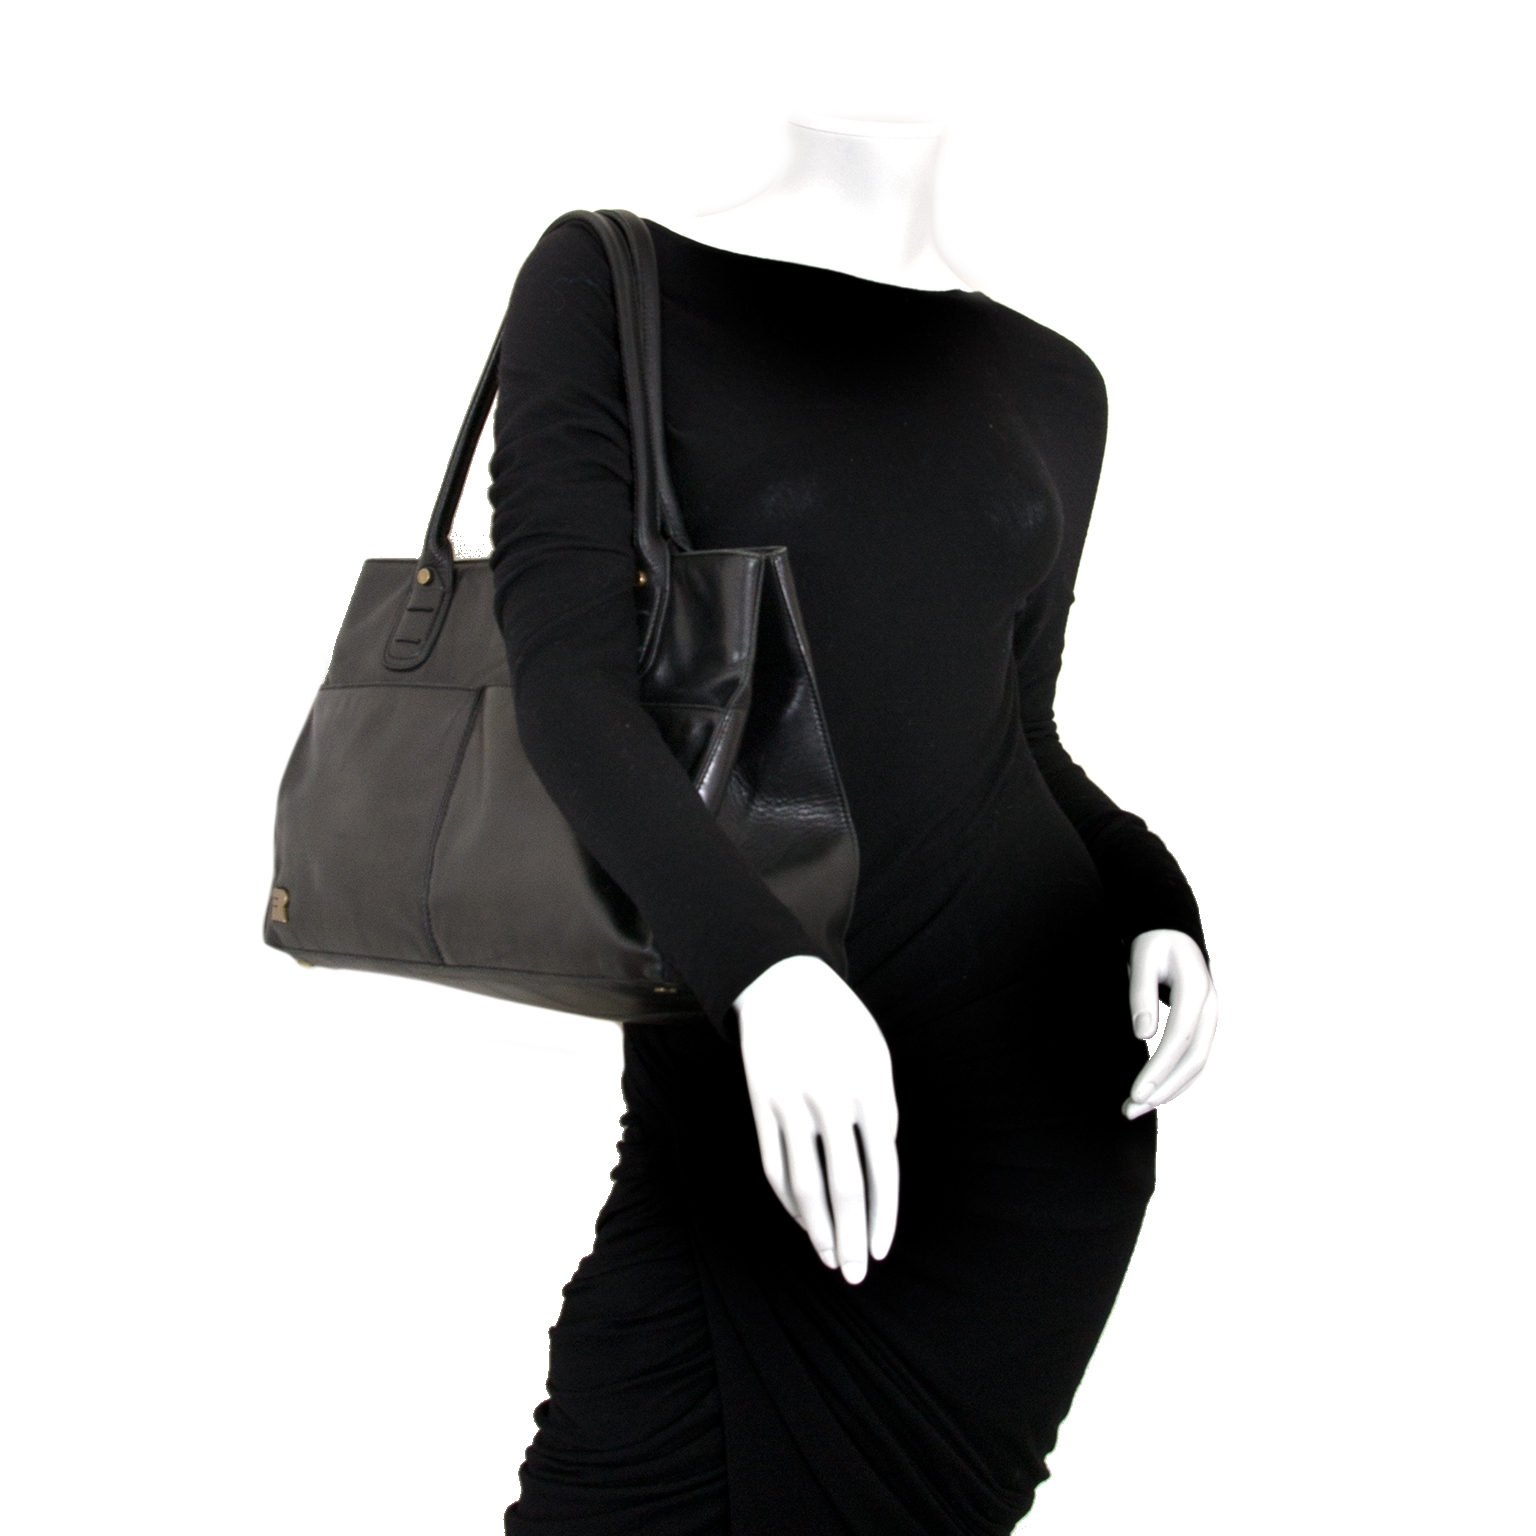 71b806648fc ... seconde main Fratelli Rossetti Black Leather Shopping Bag en vendre  chez labellov.com au meilleur